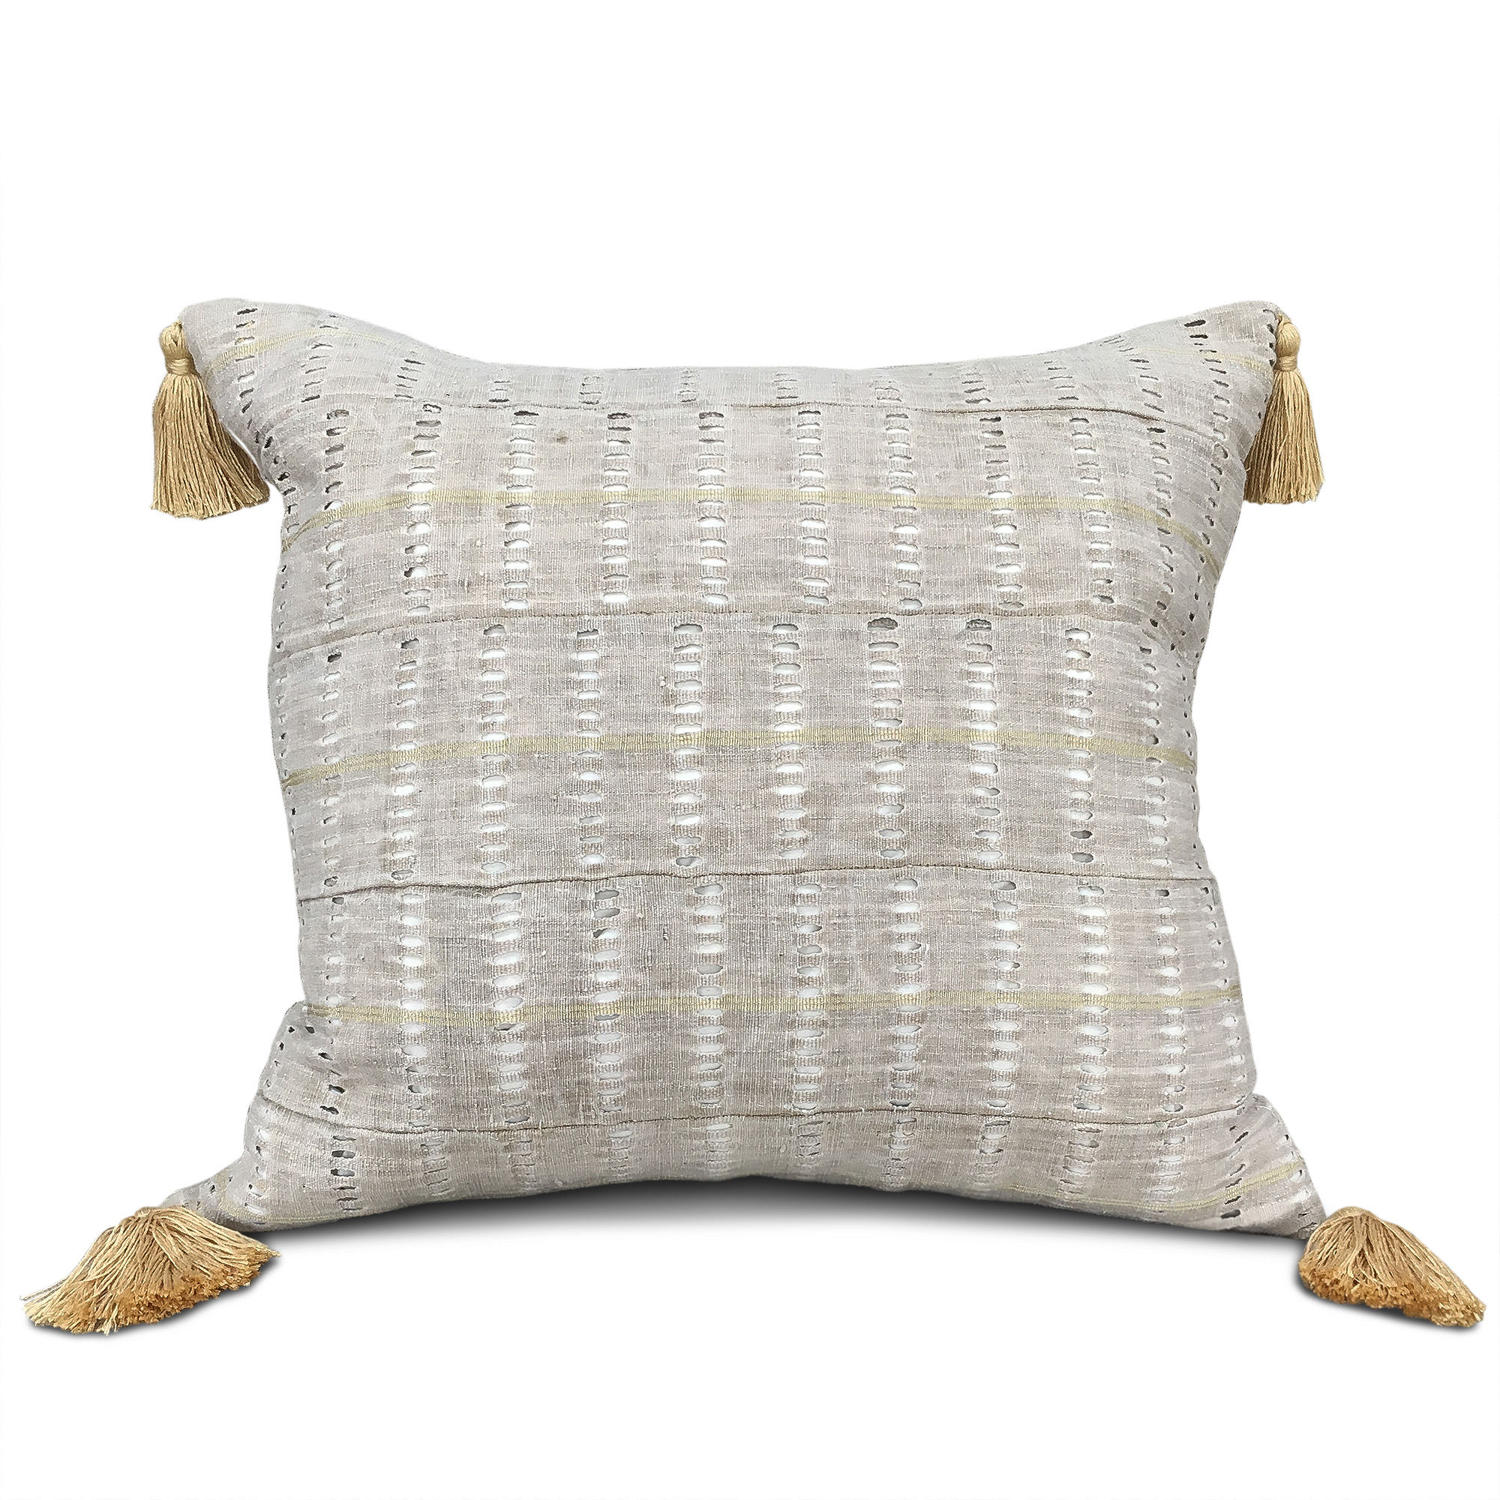 Yoruba Cushions with Yellow Tassels